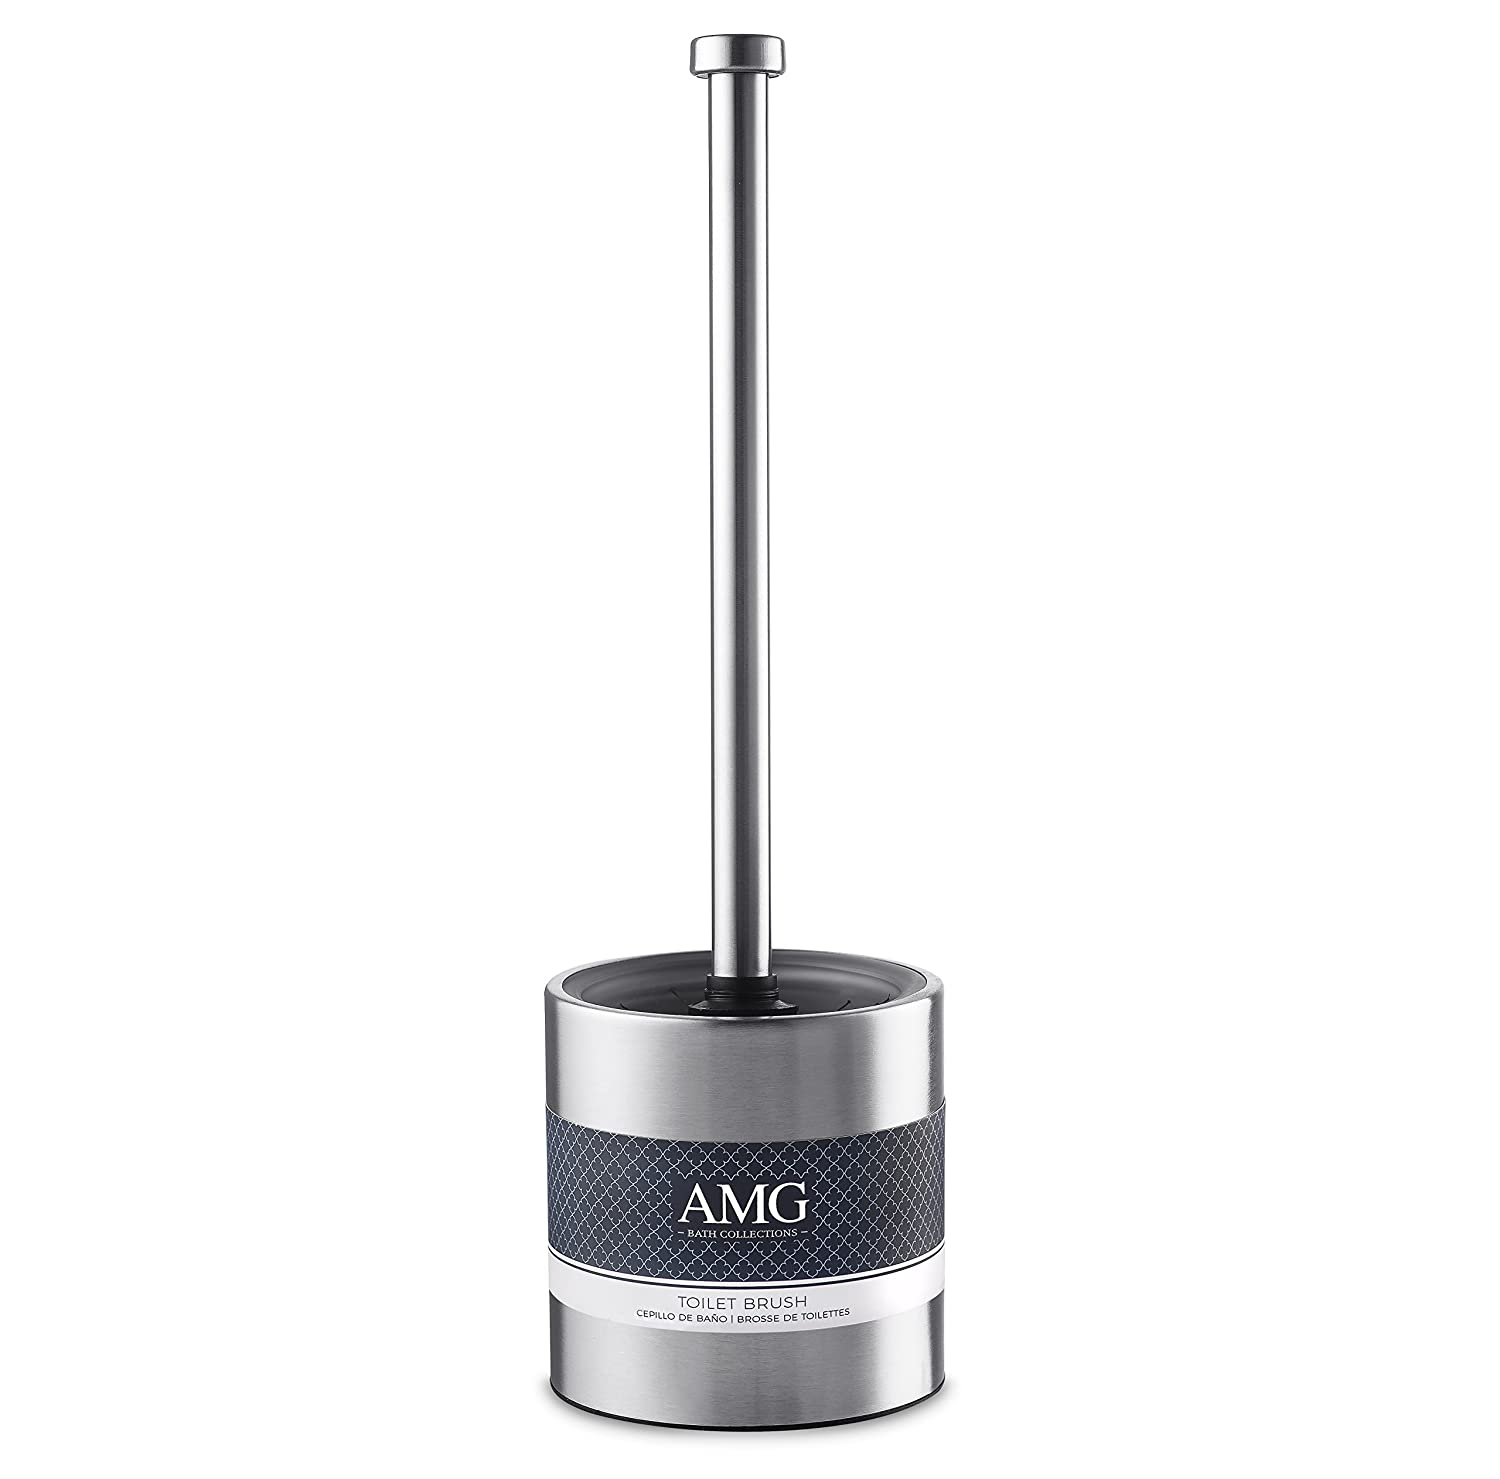 AMG and Enchante Accessories TB116A SNI Satin Nickel ILUMIZE Toilet Brush and Holder